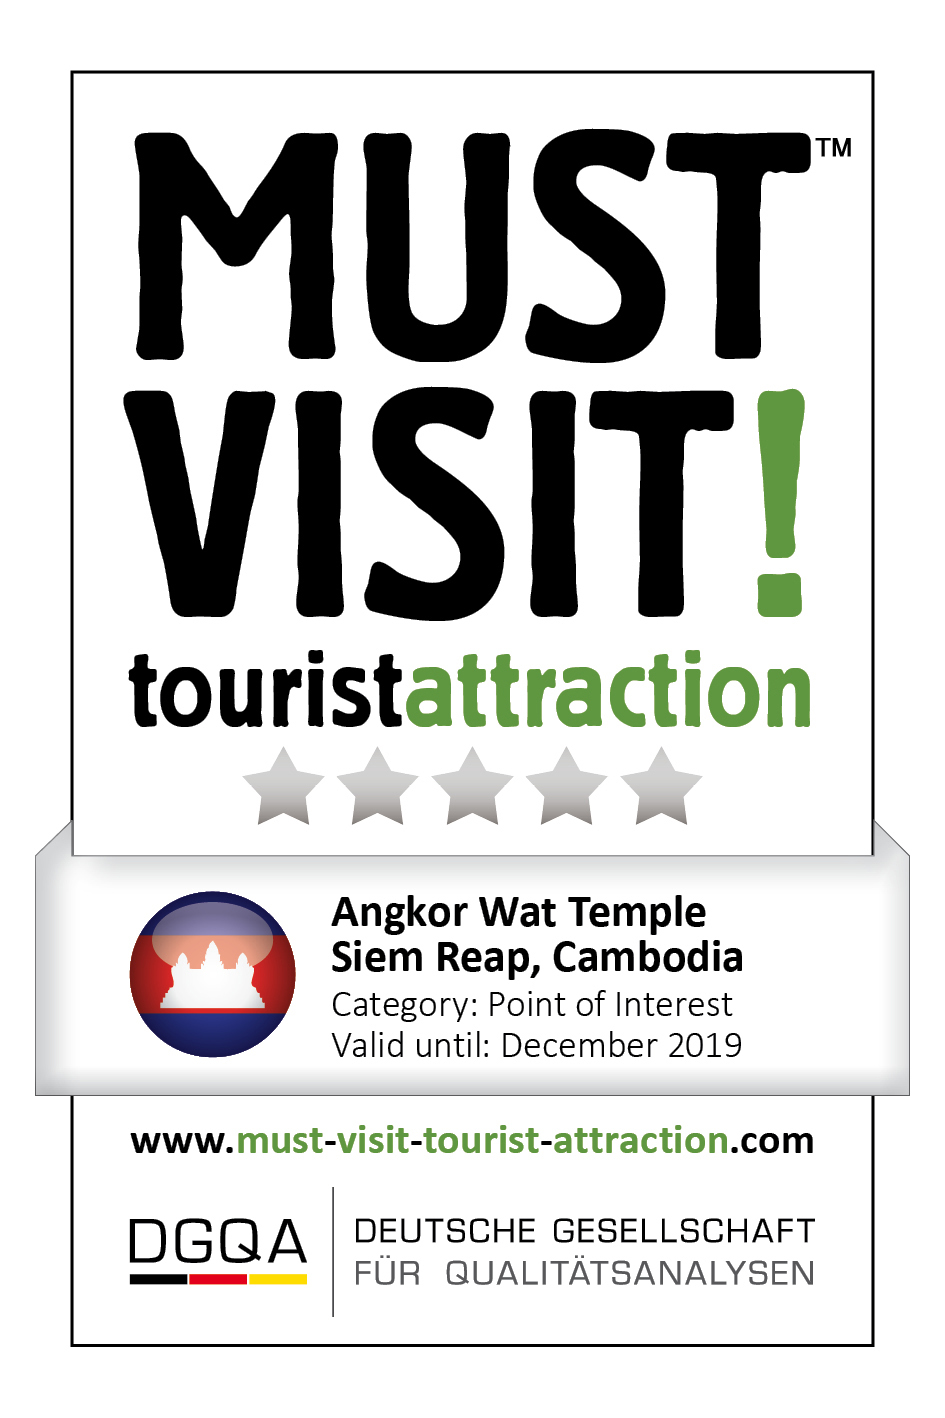 MUST VISIT! tourist attraction (dgqa) angkor wat